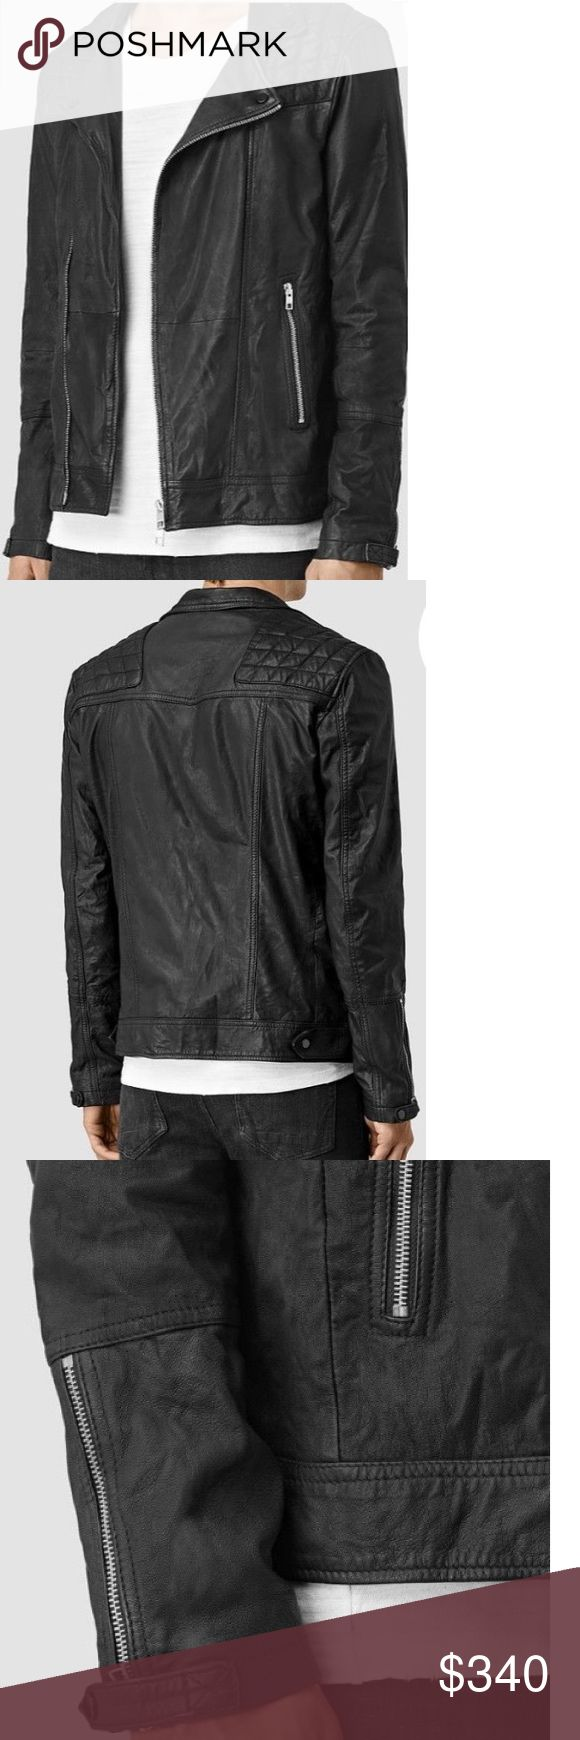 All Saints- Men's Kushiro Leather Biker Jacket All Saints- Men's Kushiro Leather Biker Jacket in Black, size large | a long running classic, this jacket embodies the spirit of rebellion. Washed and tumbled, the kid skin this jacket is crafted from has a rougher, tougher aesthetic. Naturally tanned, the Kushiro is created in India. NWOT. Retail Price: $560 All Saints Jackets & Coats